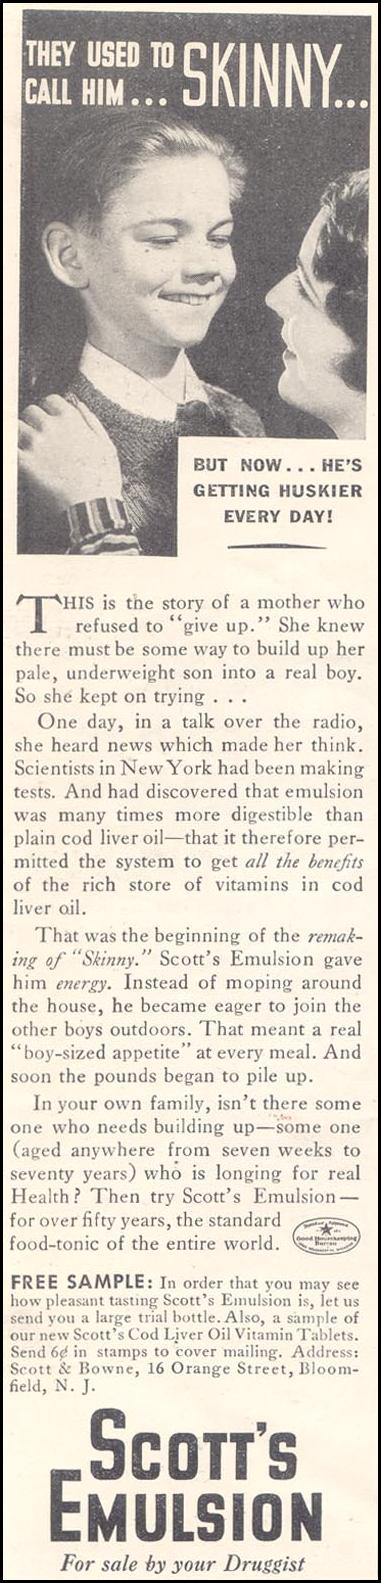 SCOTT'S EMULSION